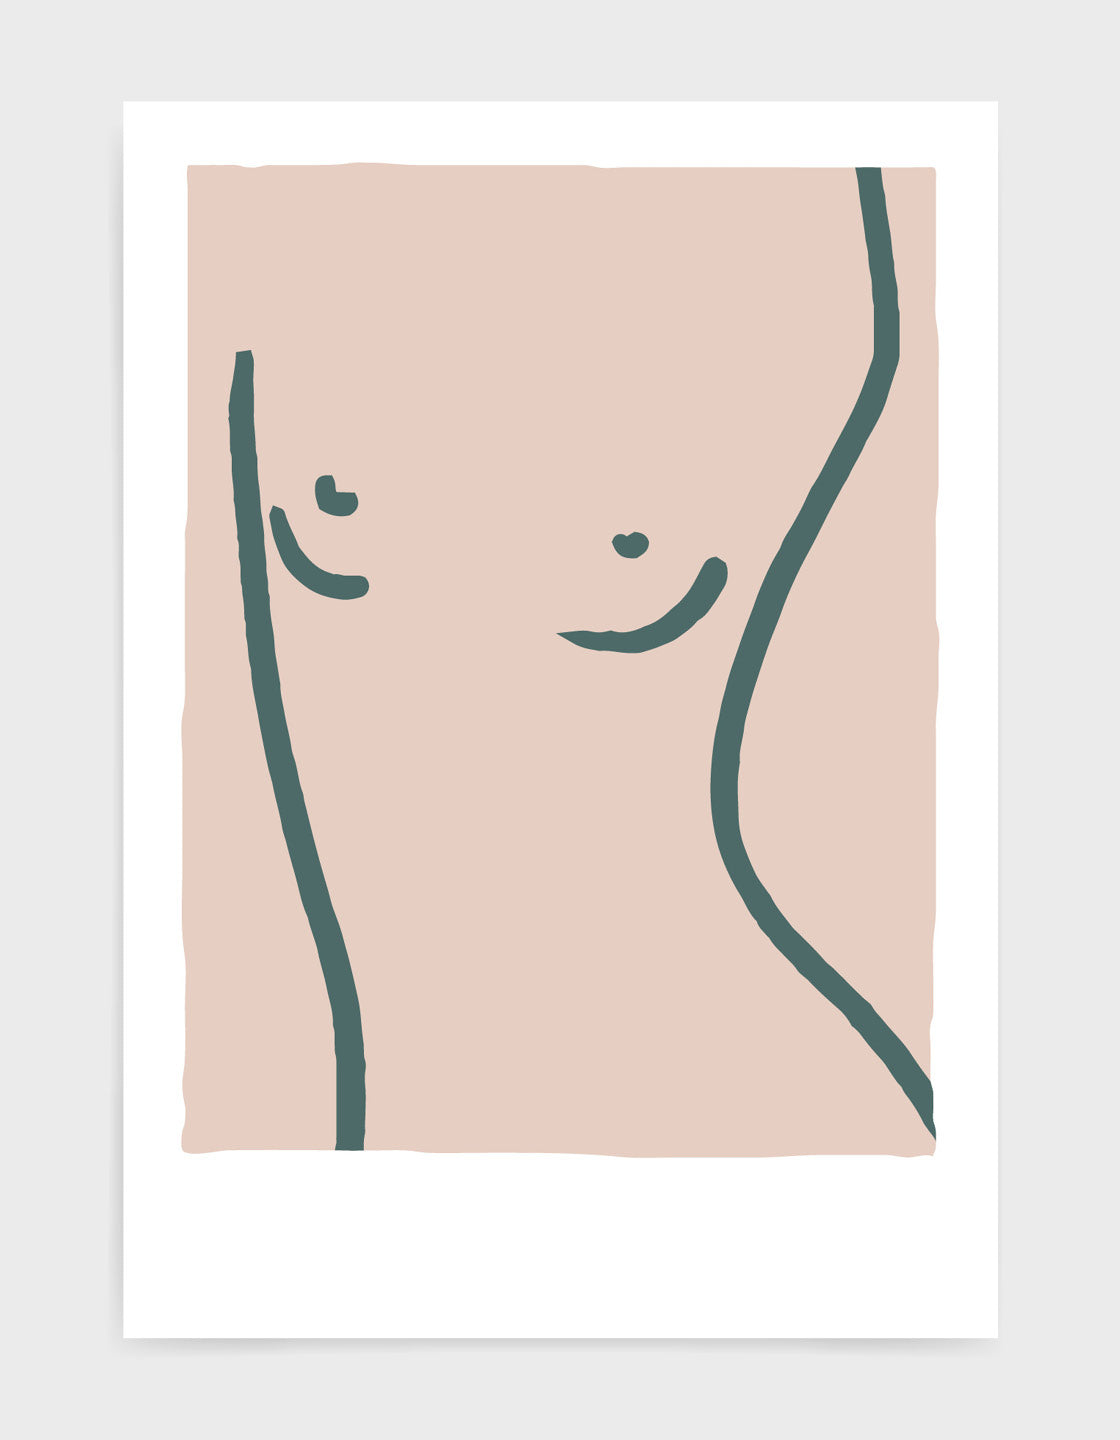 super simpl line drawing in grey against a pink background of a woman's torso and breasts